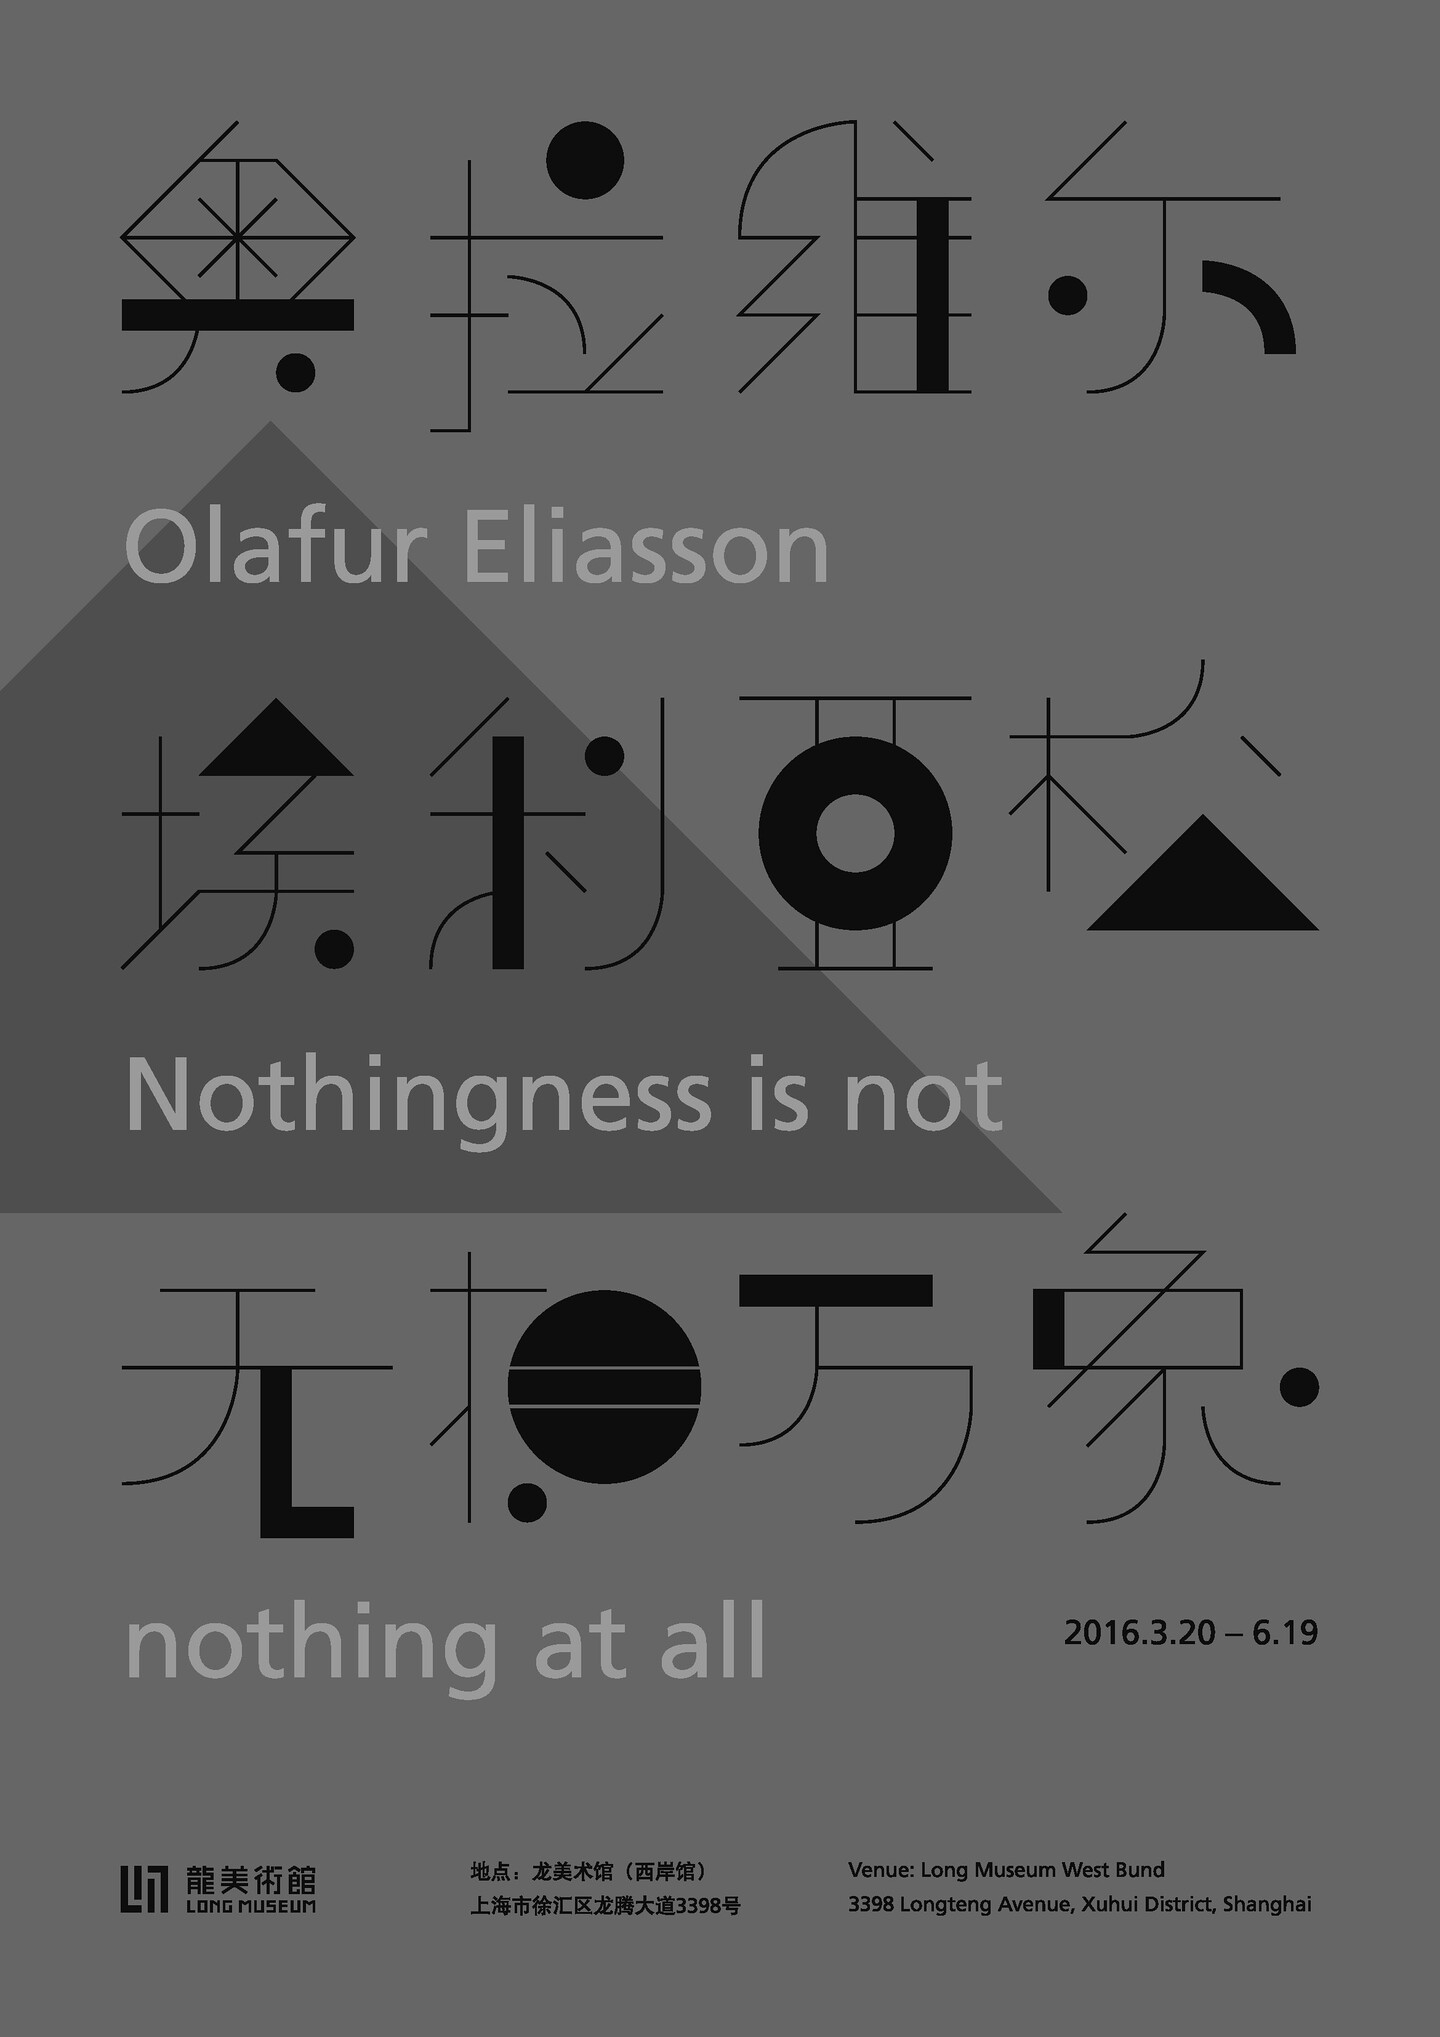 Olafur Eliasson Nothingness Is Not Nothing At All Announcements